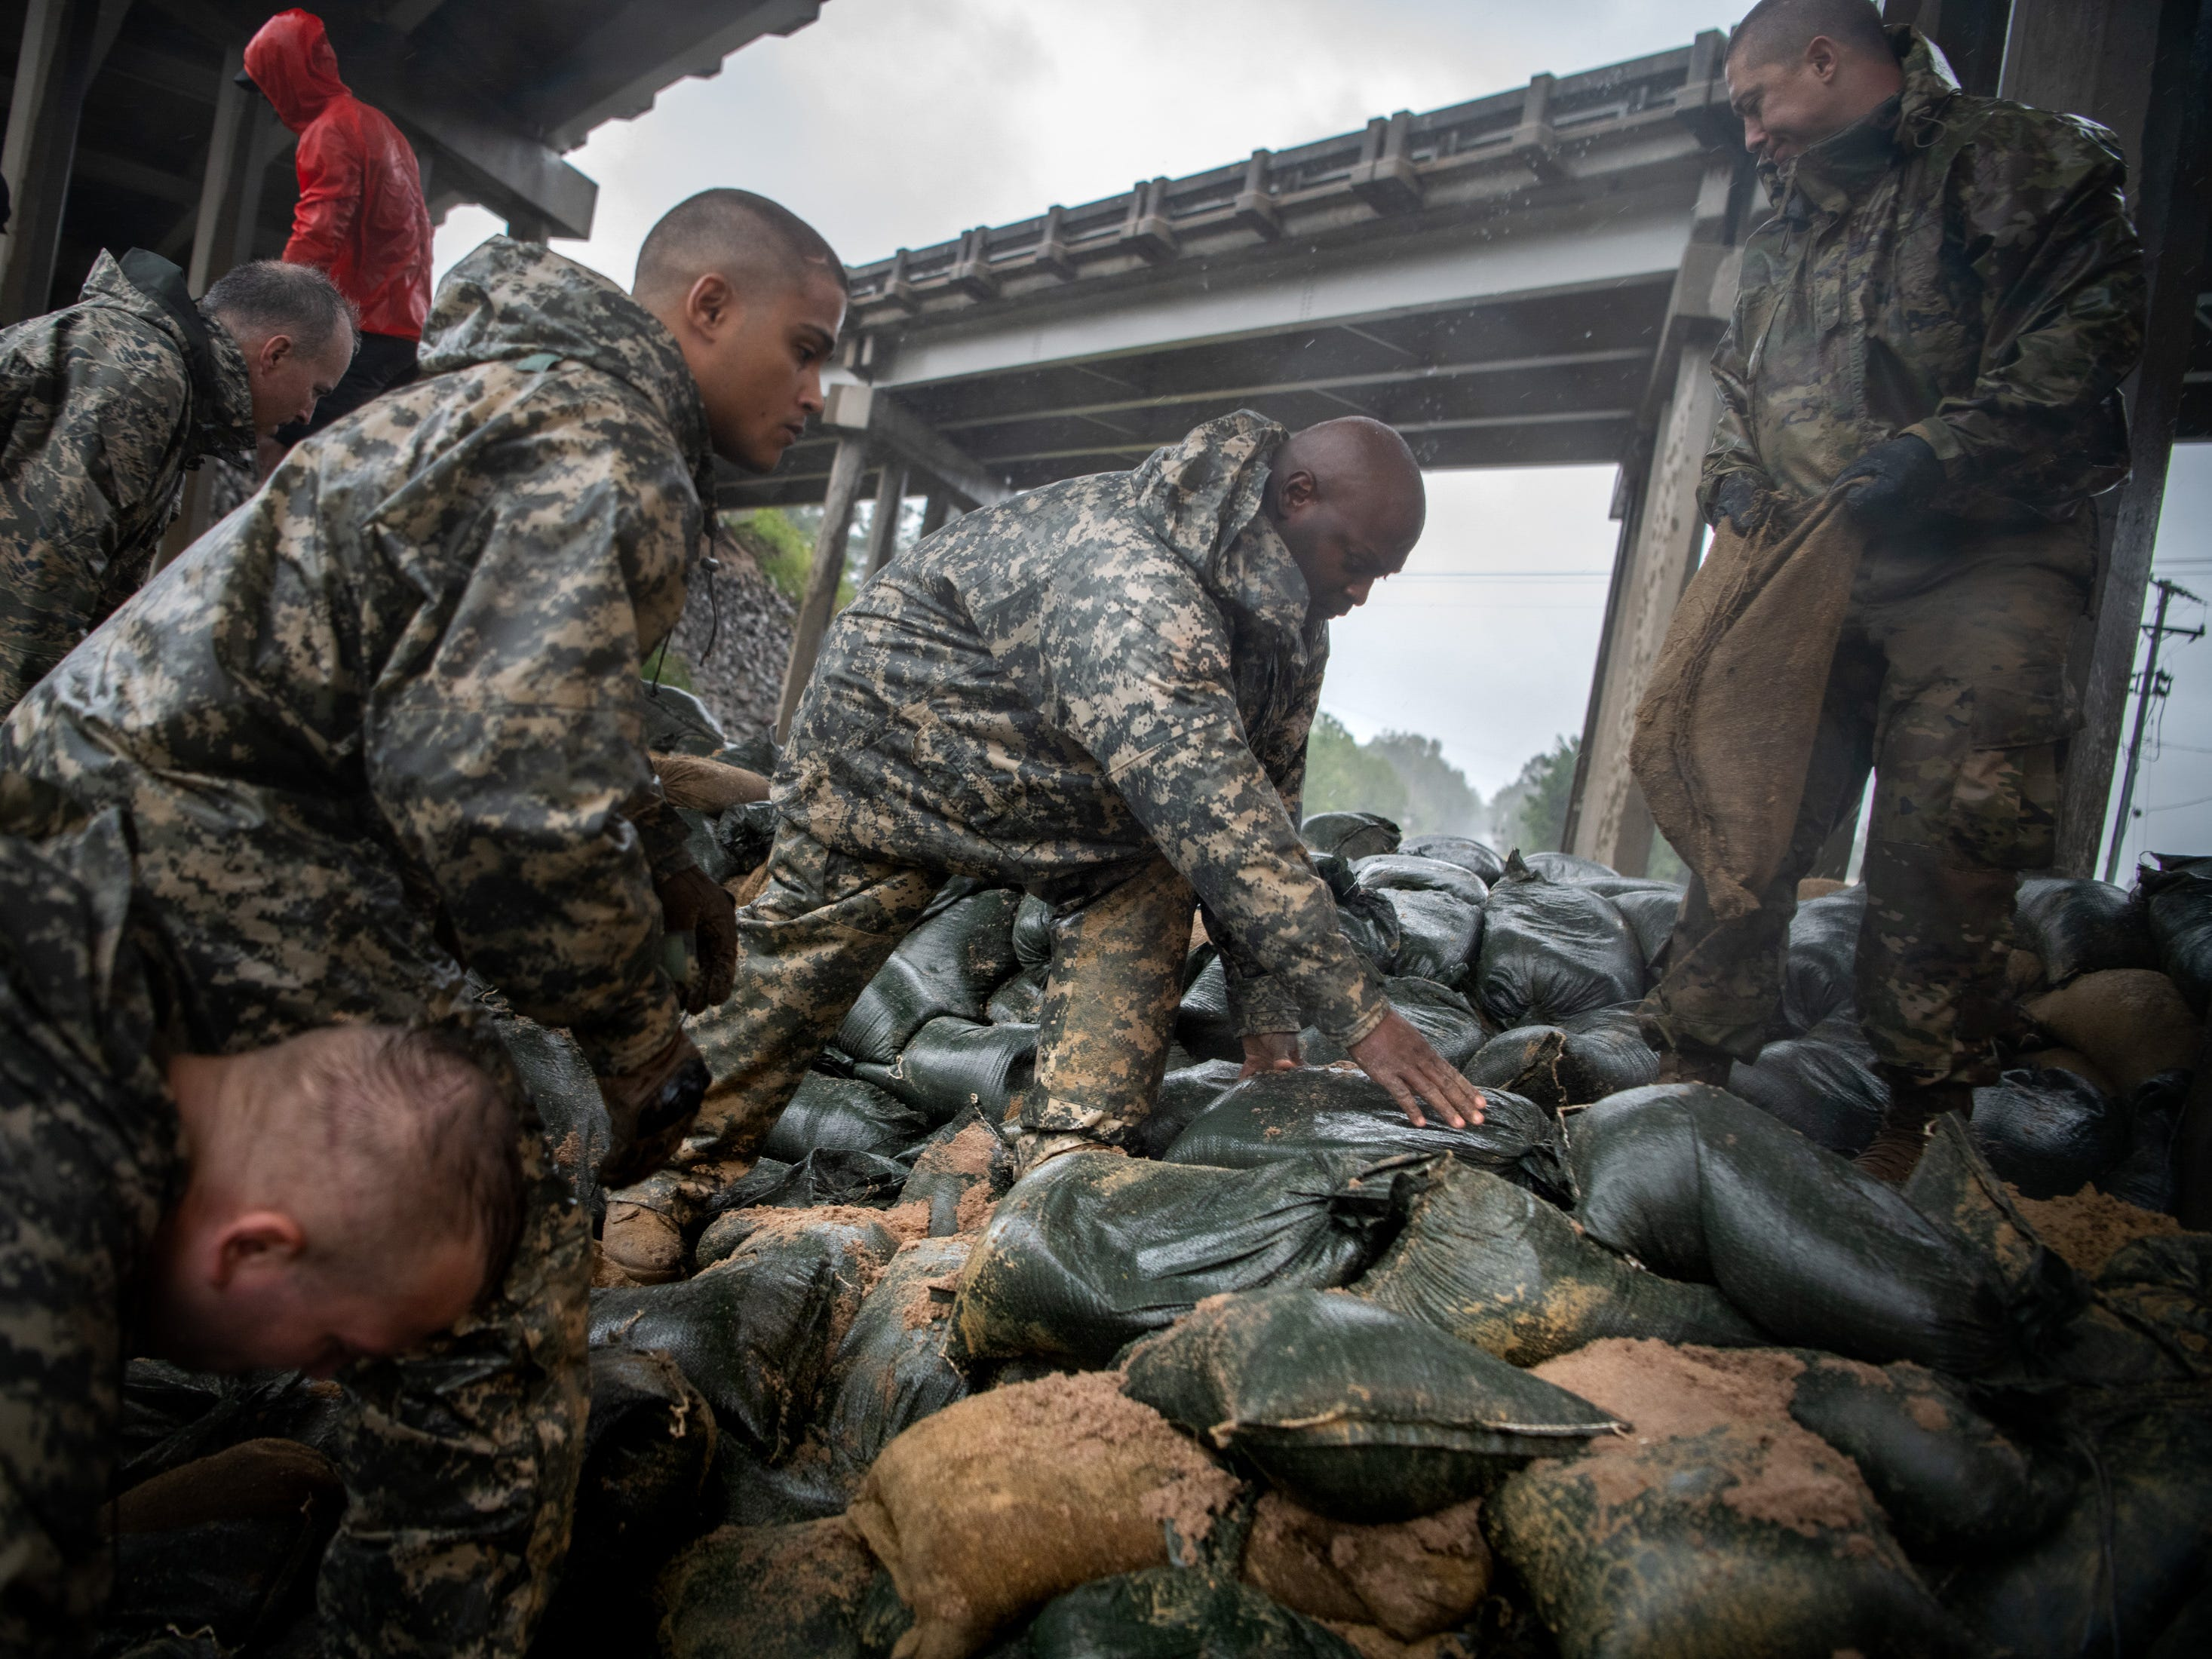 Soldiers from the North Carolina National Guard reinforce a low-lying area with sandbags as Hurricane Florence approaches Lumberton, N.C., Friday, Sept. 14, 2018.